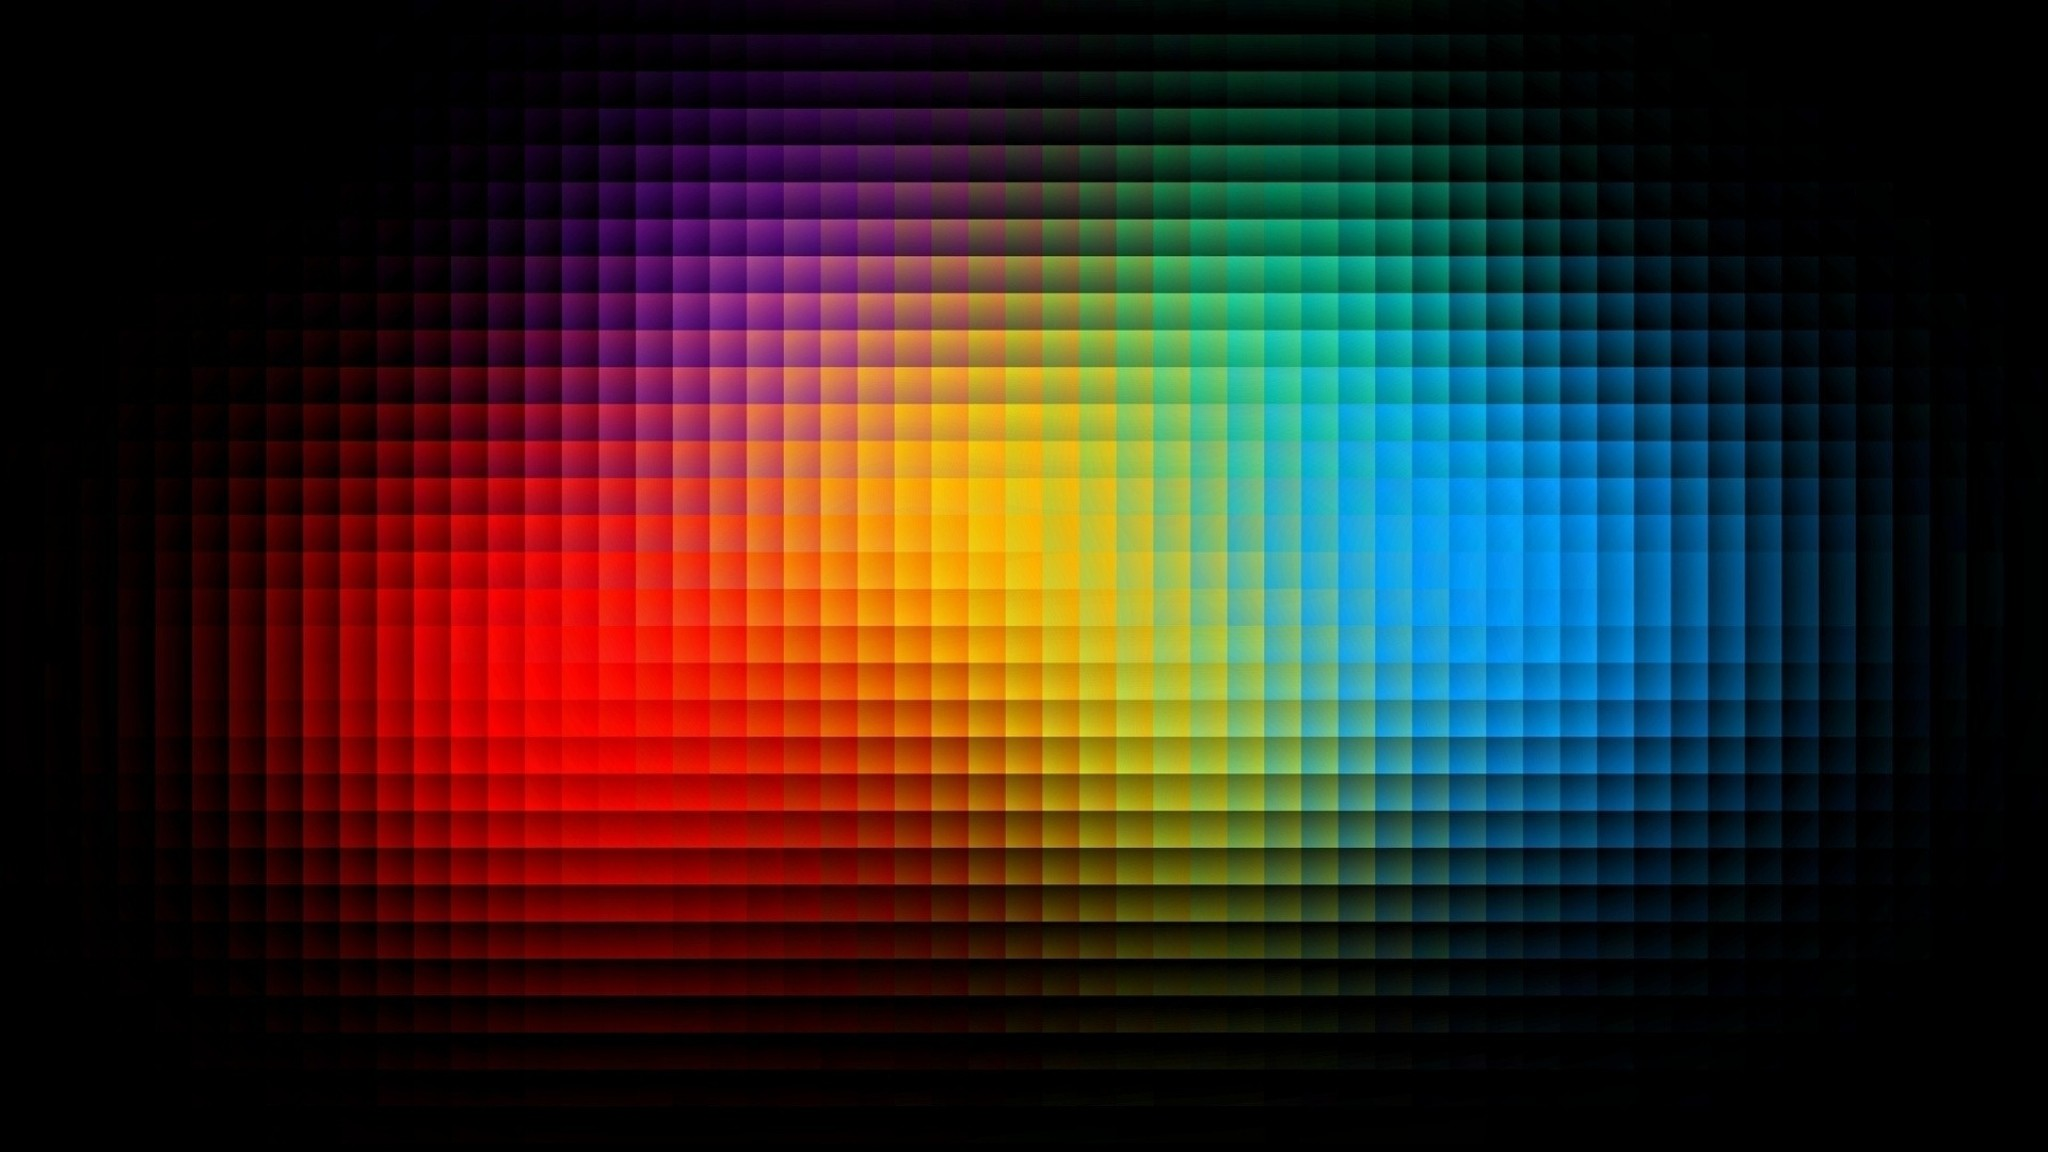 Wallpaper background, pixels, colorful, bright